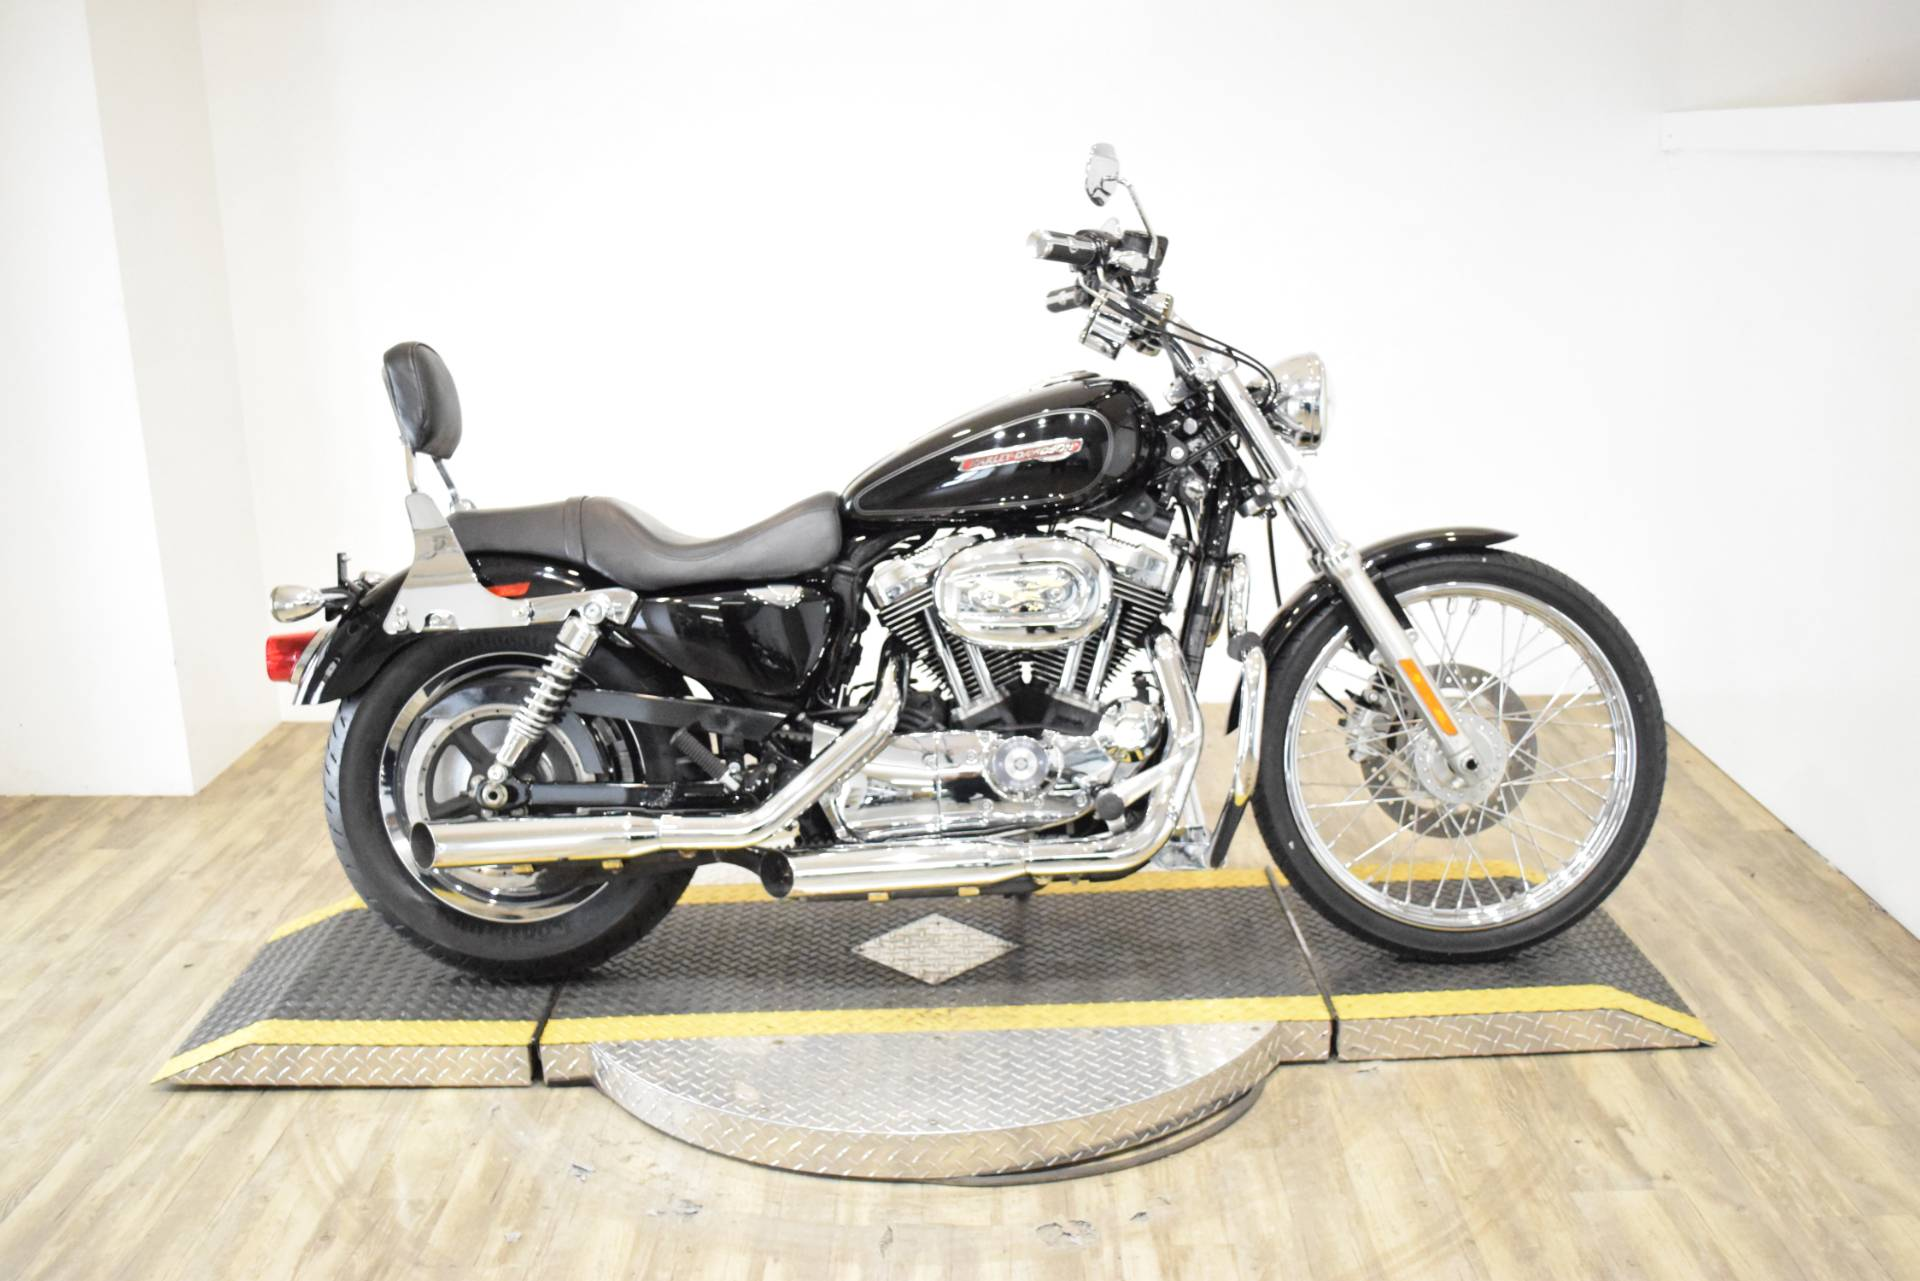 2008 Harley-Davidson Sportster® 1200 Custom in Wauconda, Illinois - Photo 1